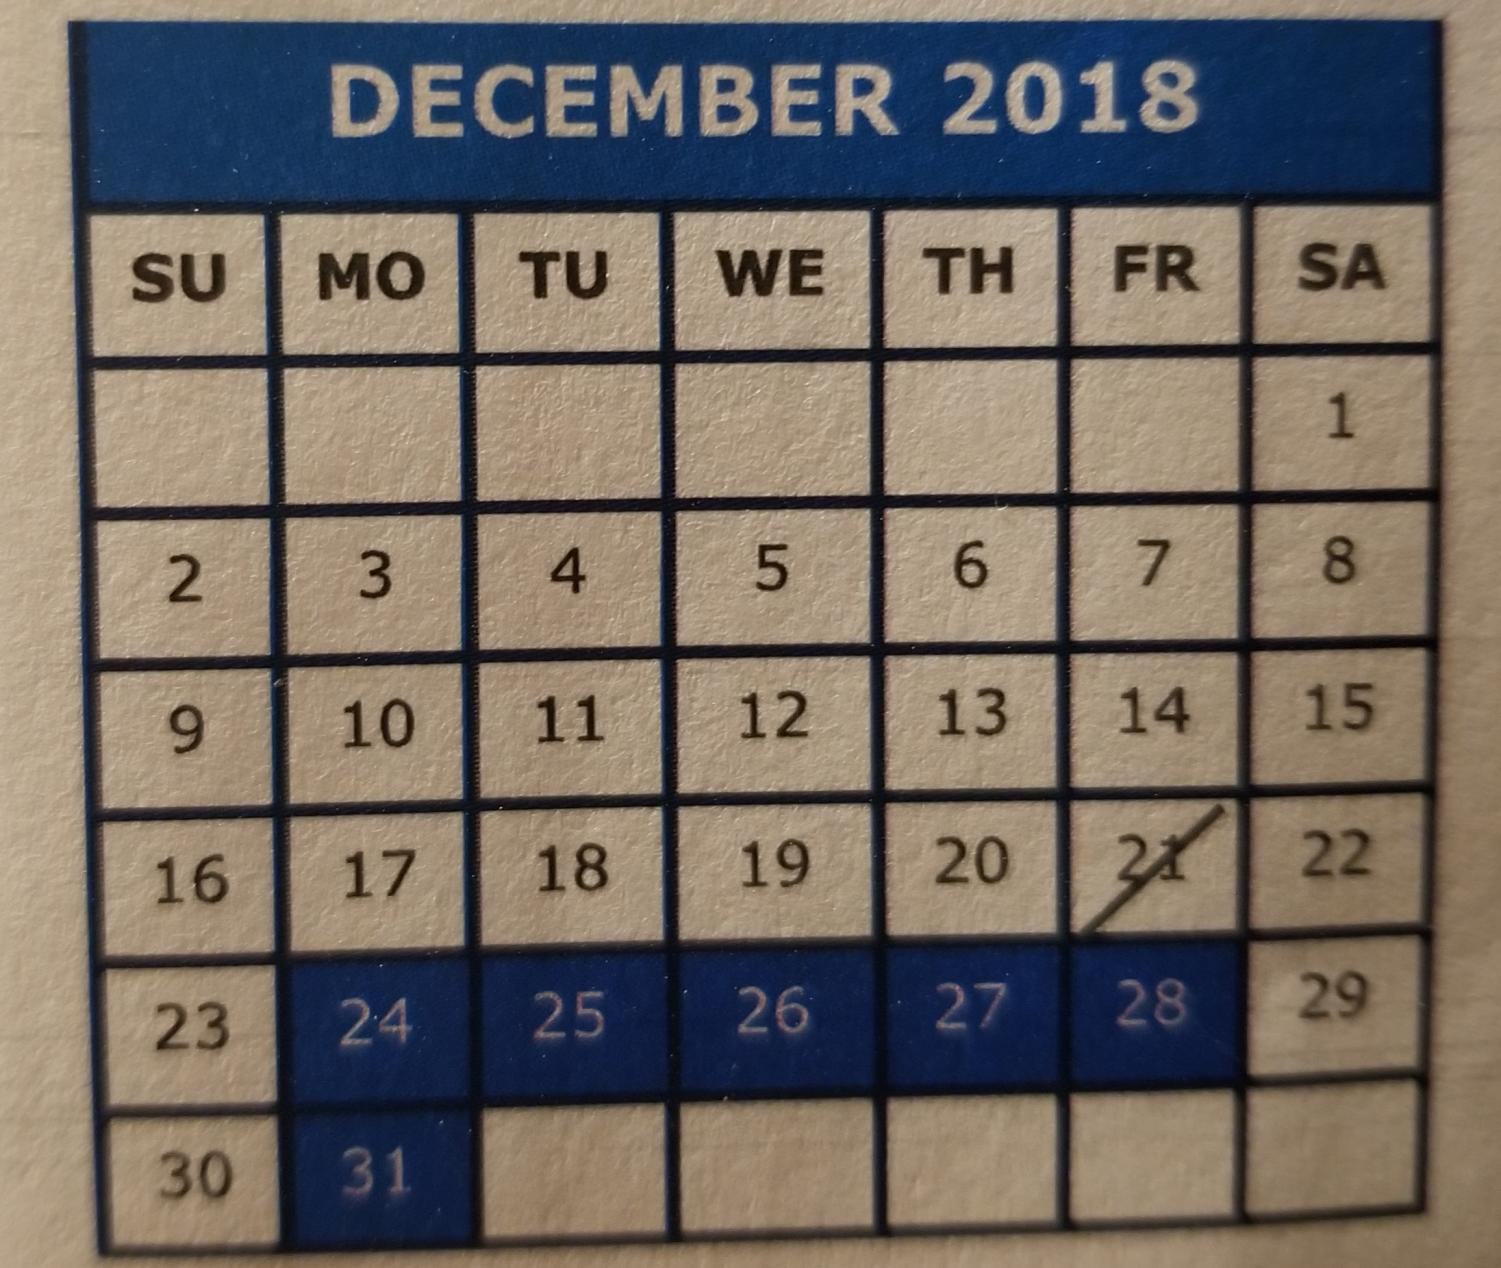 The school calendar shows the winter break for students. Classess resumed on Wednesday, January 2, 2019.